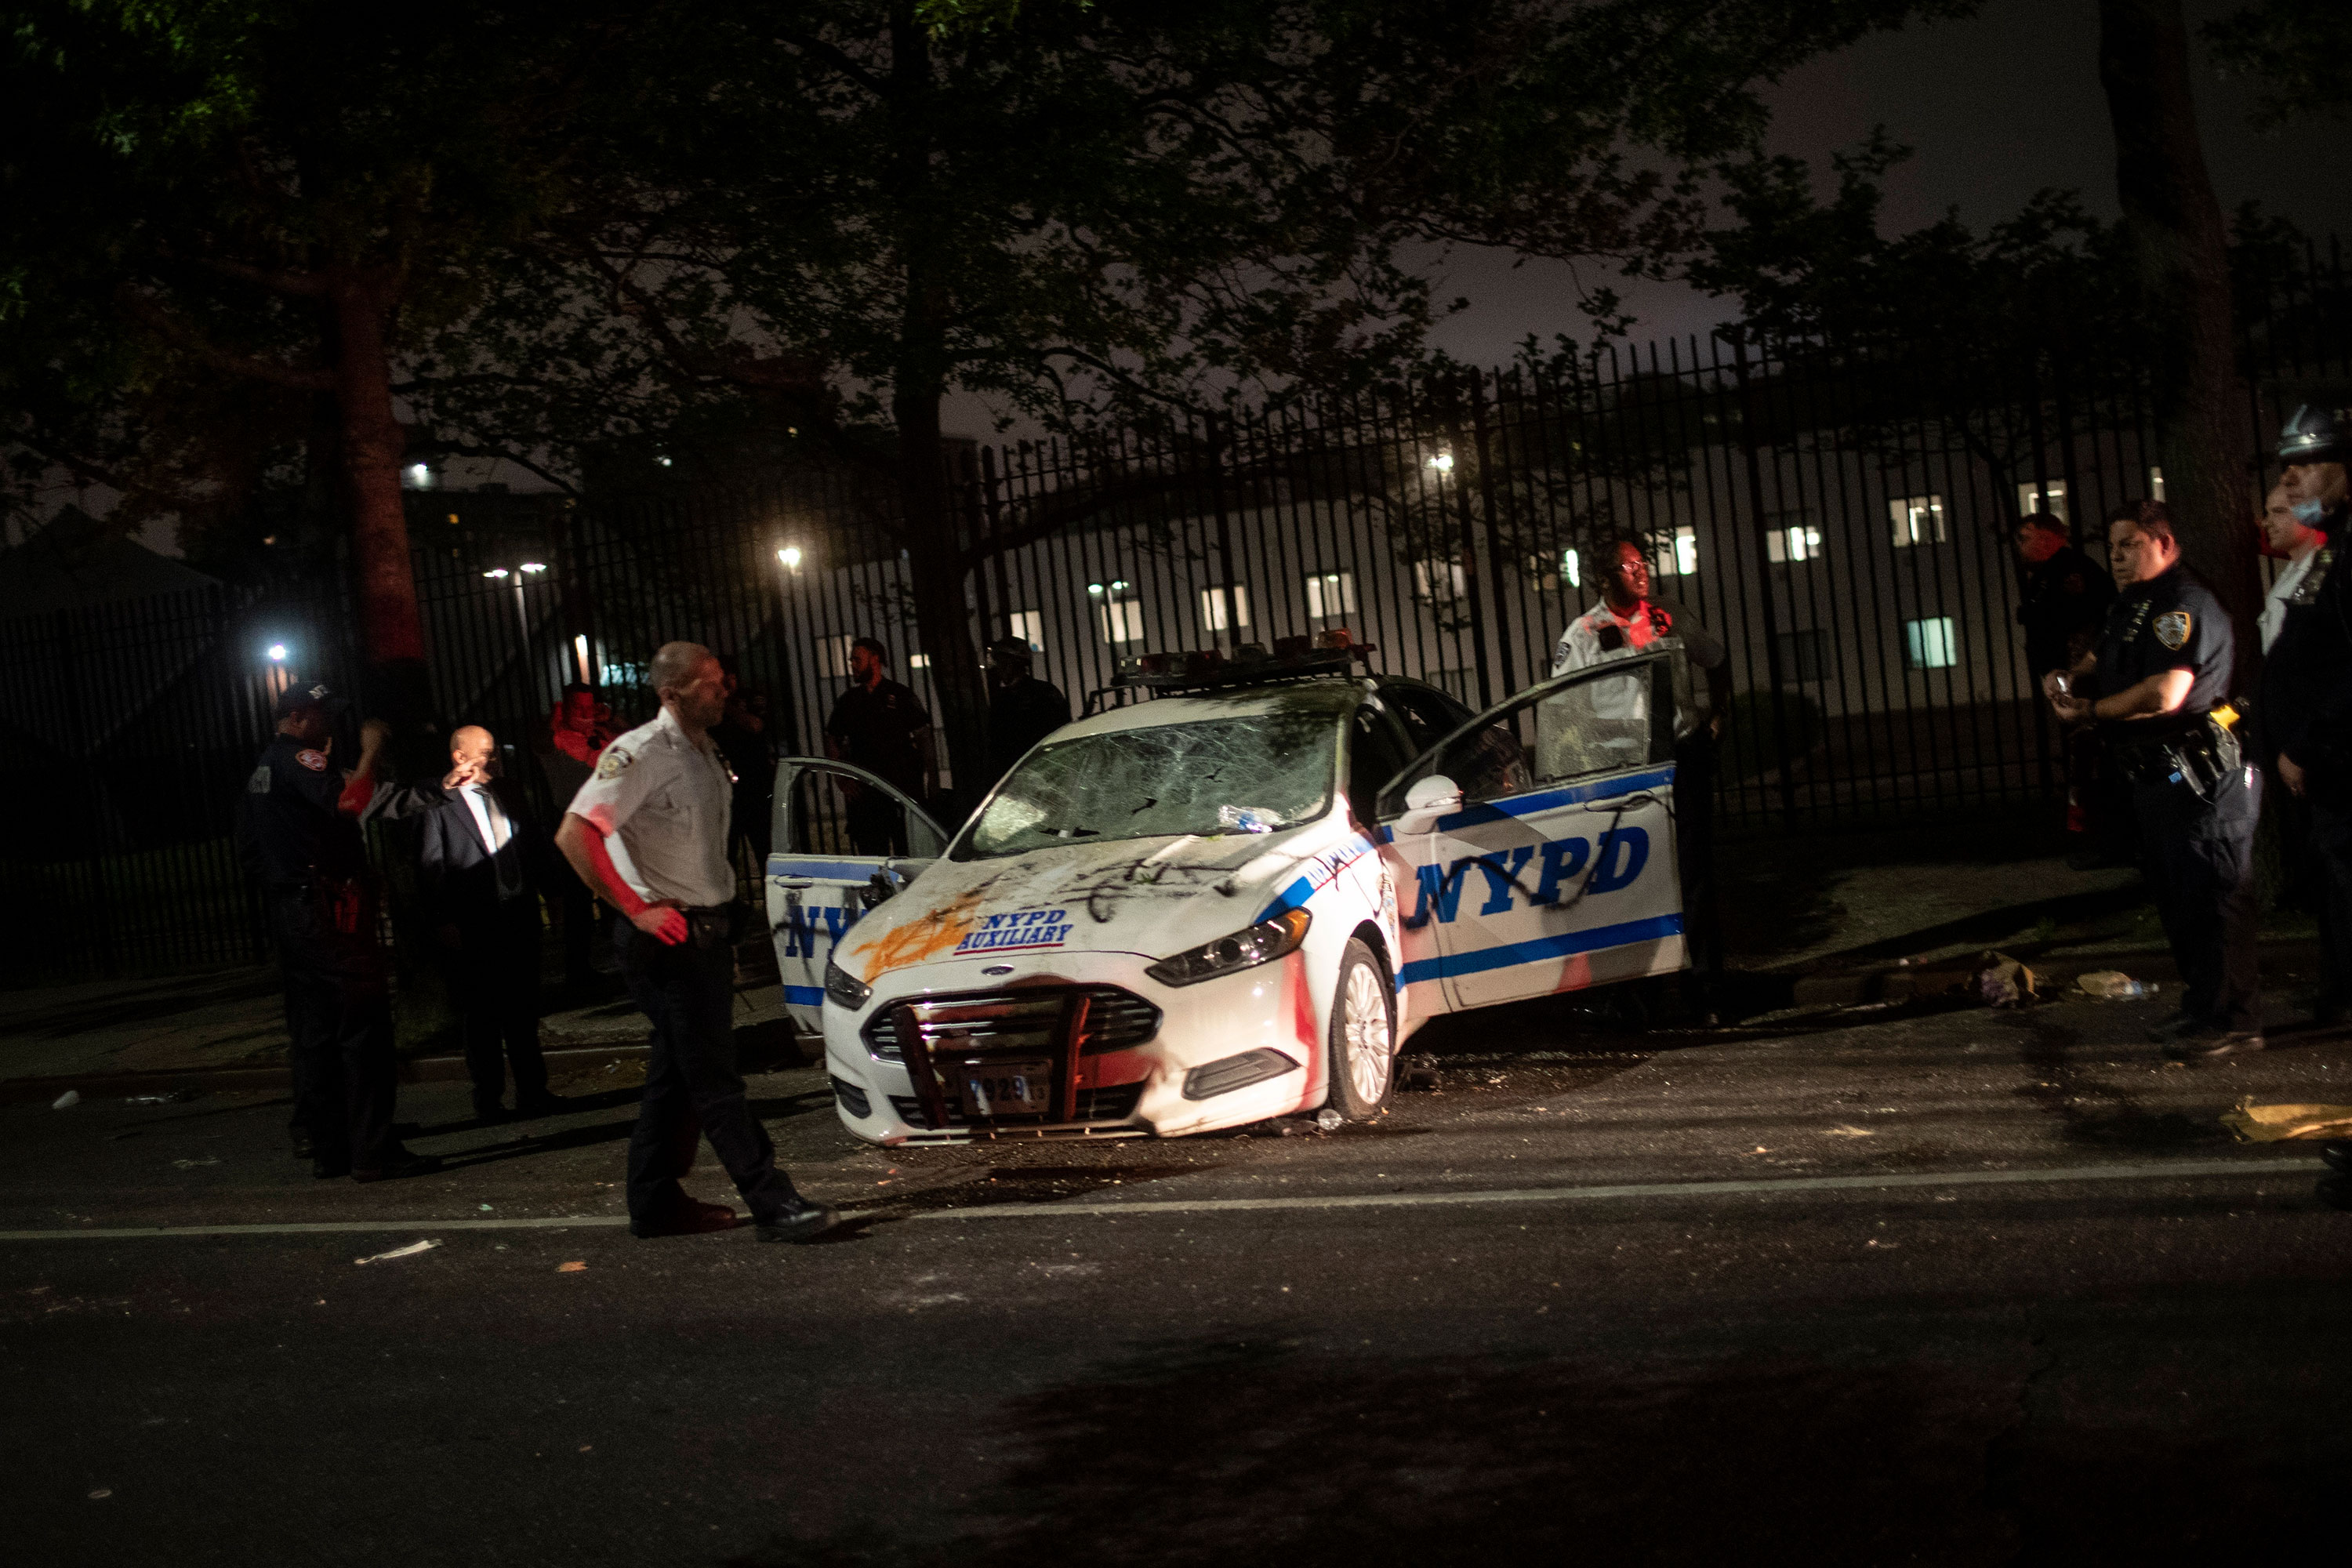 Policemen surround a NYPD vehicle after it was vandalized by protesters in Brooklyn on May 29.